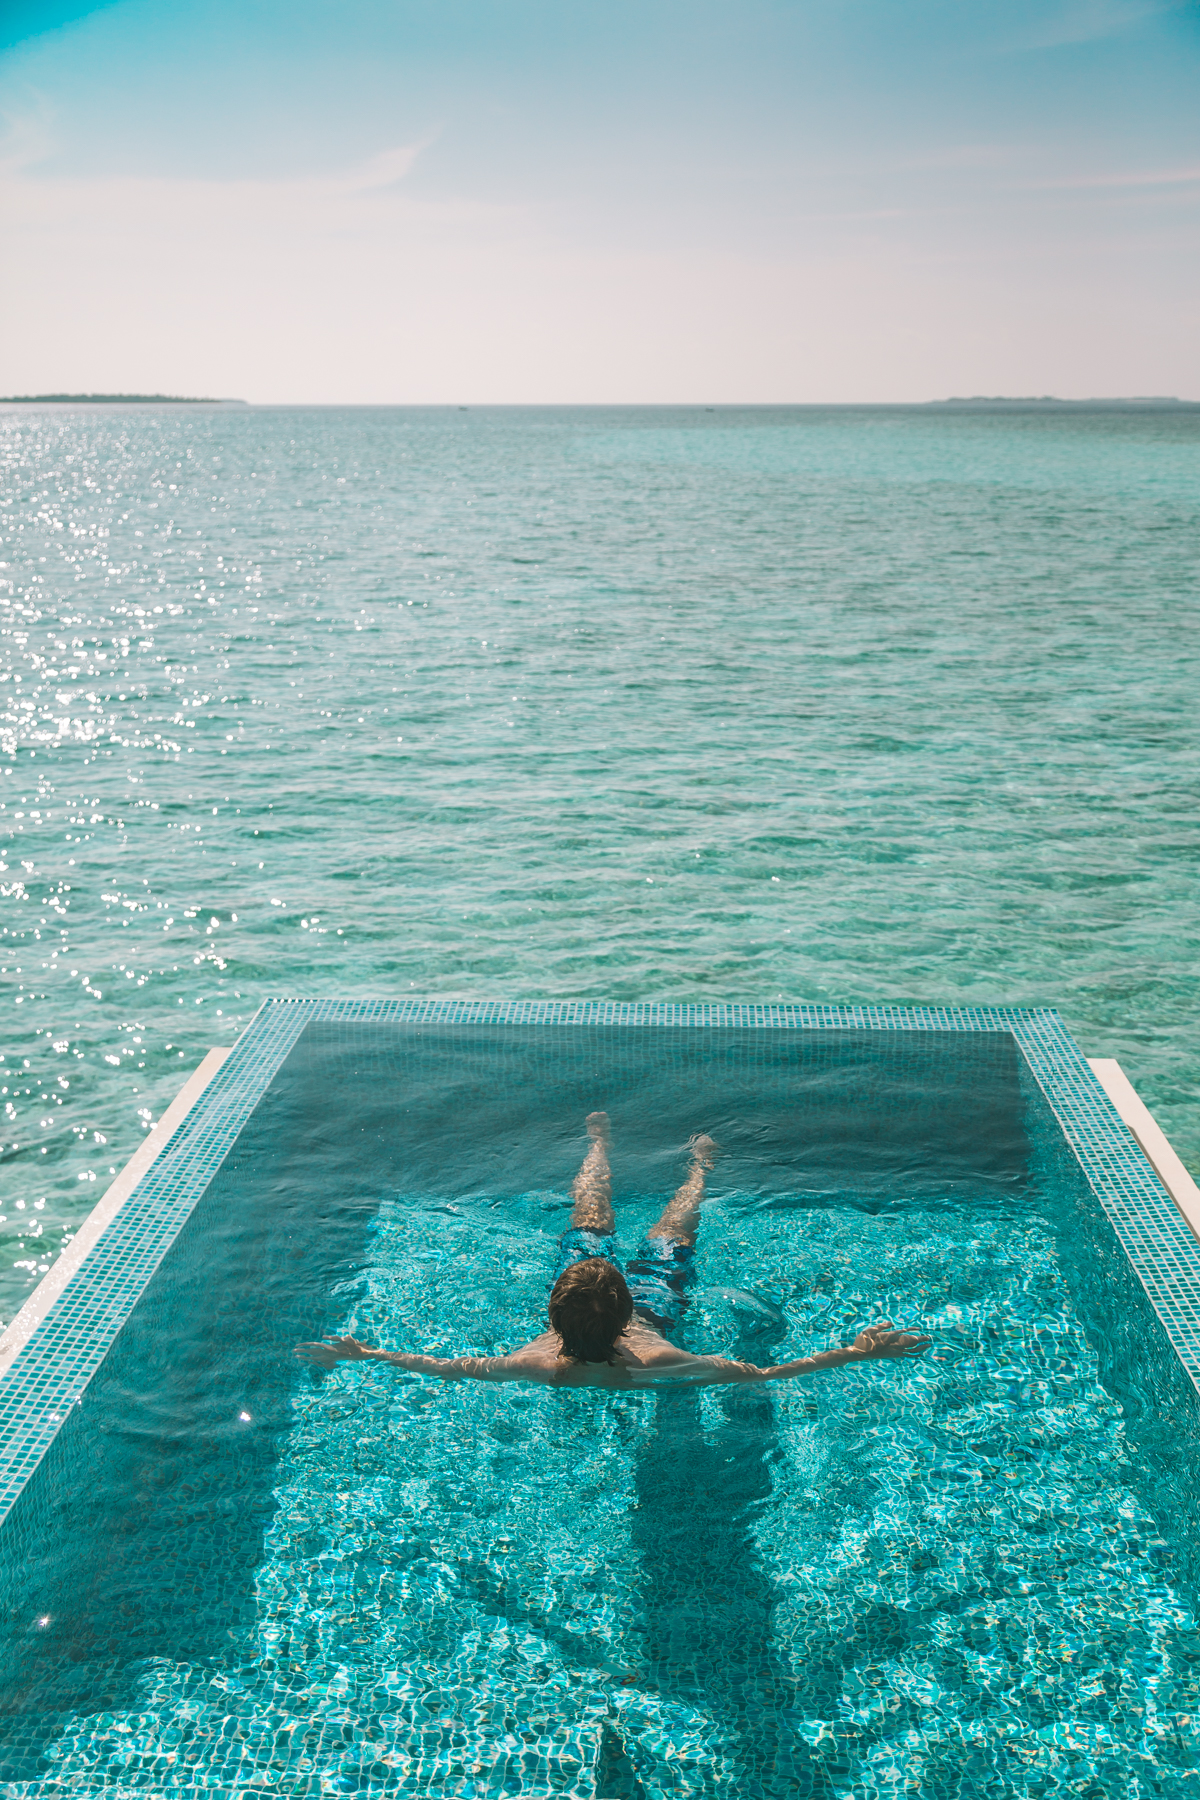 thestylejungle_Maldives_Dhigali)vacation_beach_pool_travelblog